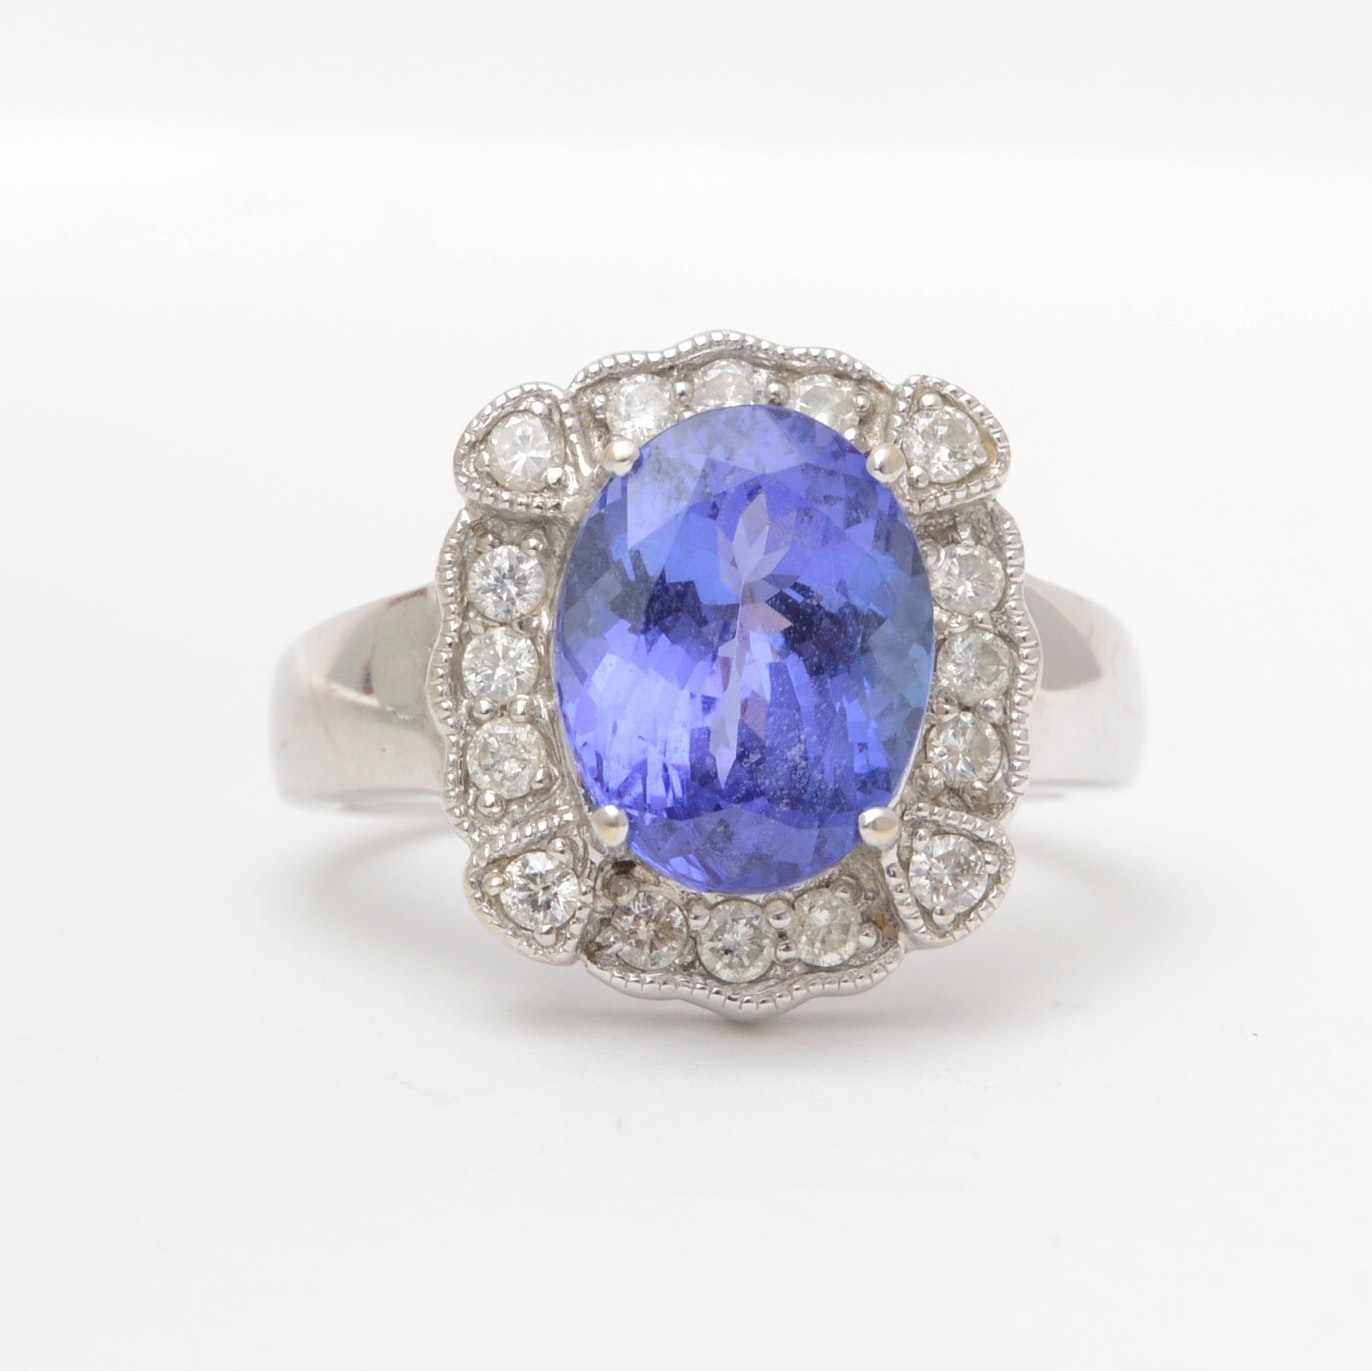 14K White Gold and Tanzanite Ring with Diamond Side Stones